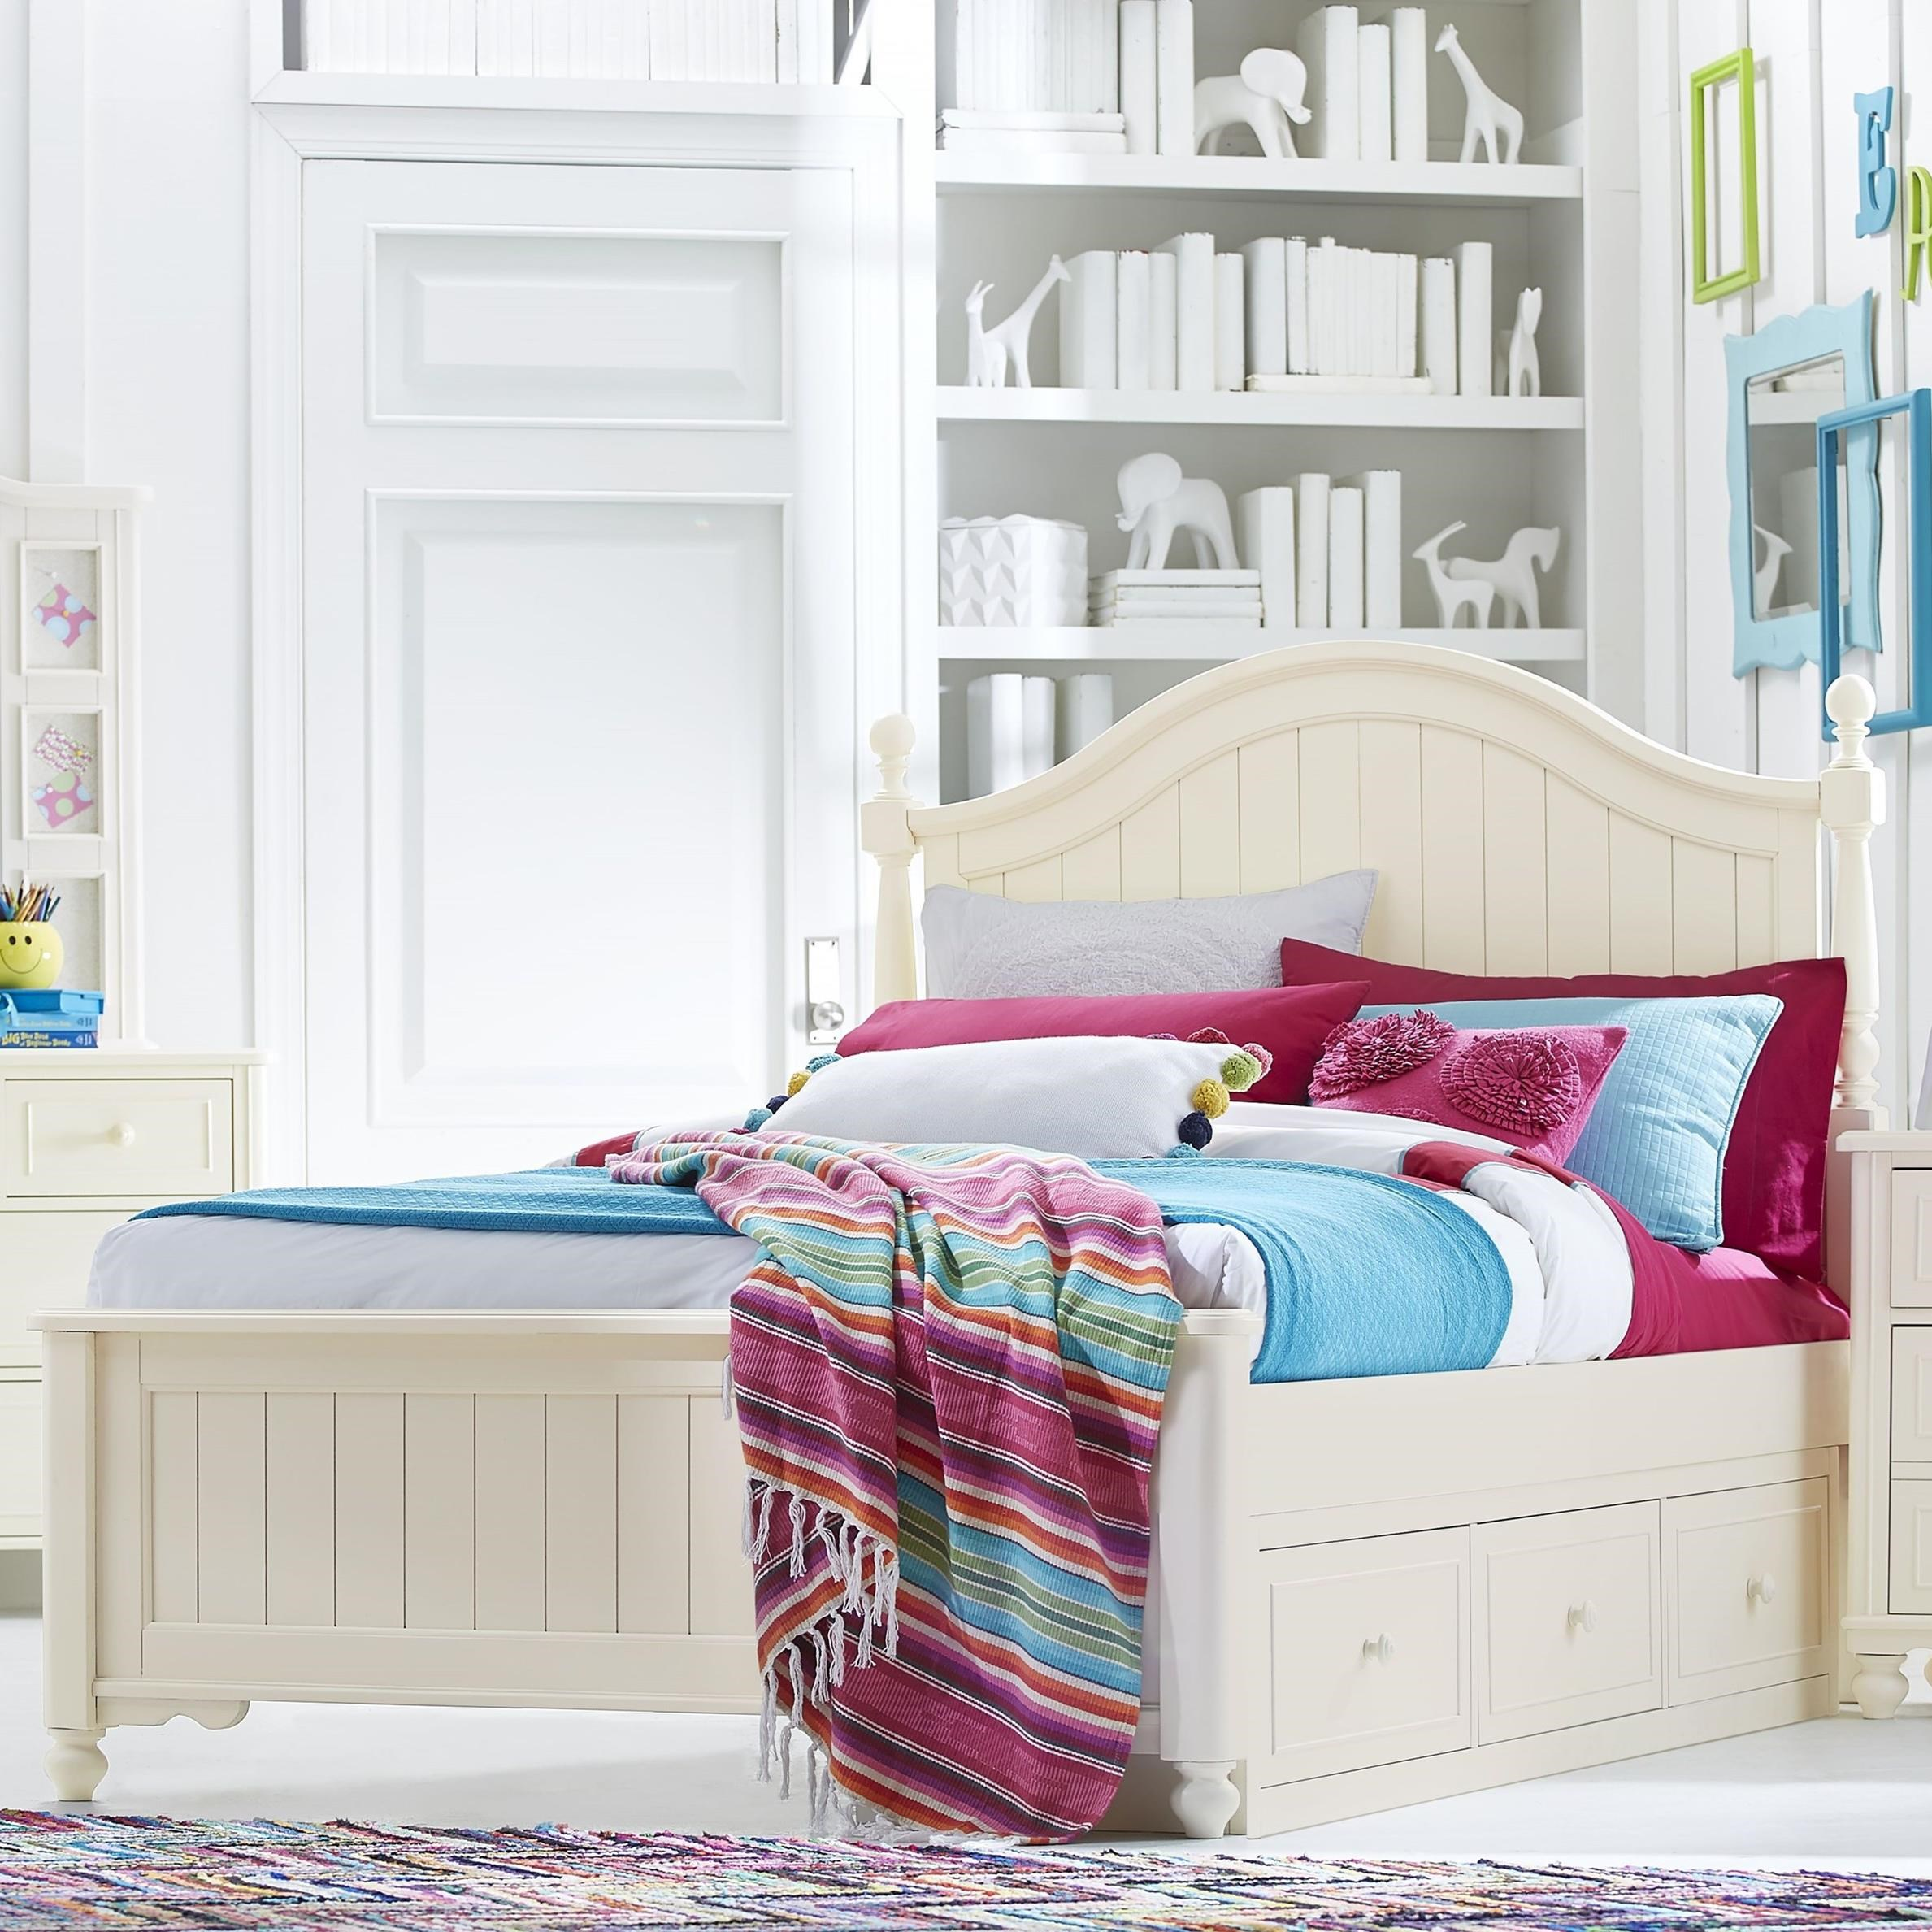 Legacy Classic Kids Summerset Full Bed with Storage Drawer - Item Number: 6841-4204K+9300